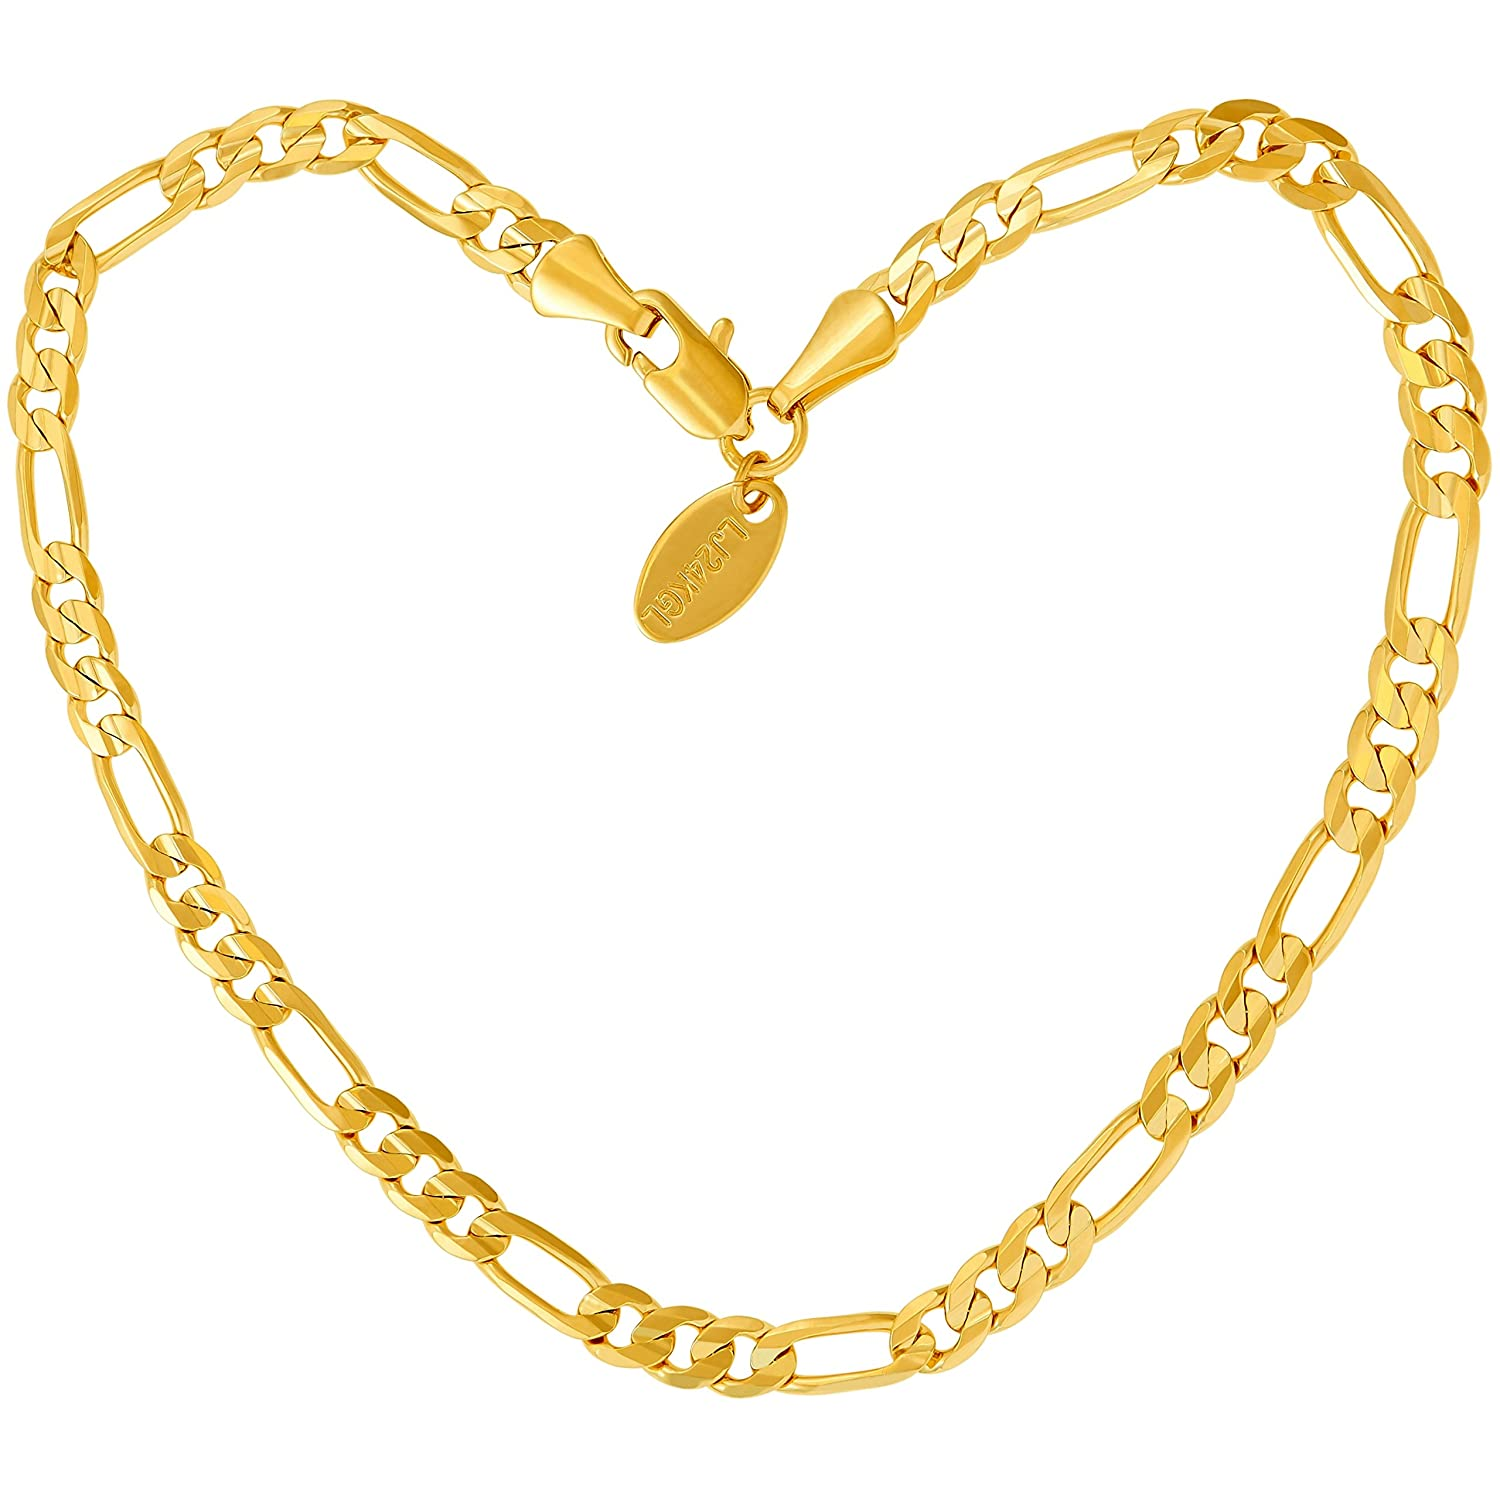 Lifetime Jewelry Anklets for Women Men and Teen Girls - 24K Real Gold Plated 4mm Figaro Chain - Durable Ankle Bracelet - Wear to Beach or Party - Cute Surfer Anklet - 9 10 and 11 inches Lifetime Products Group 10B Anklet